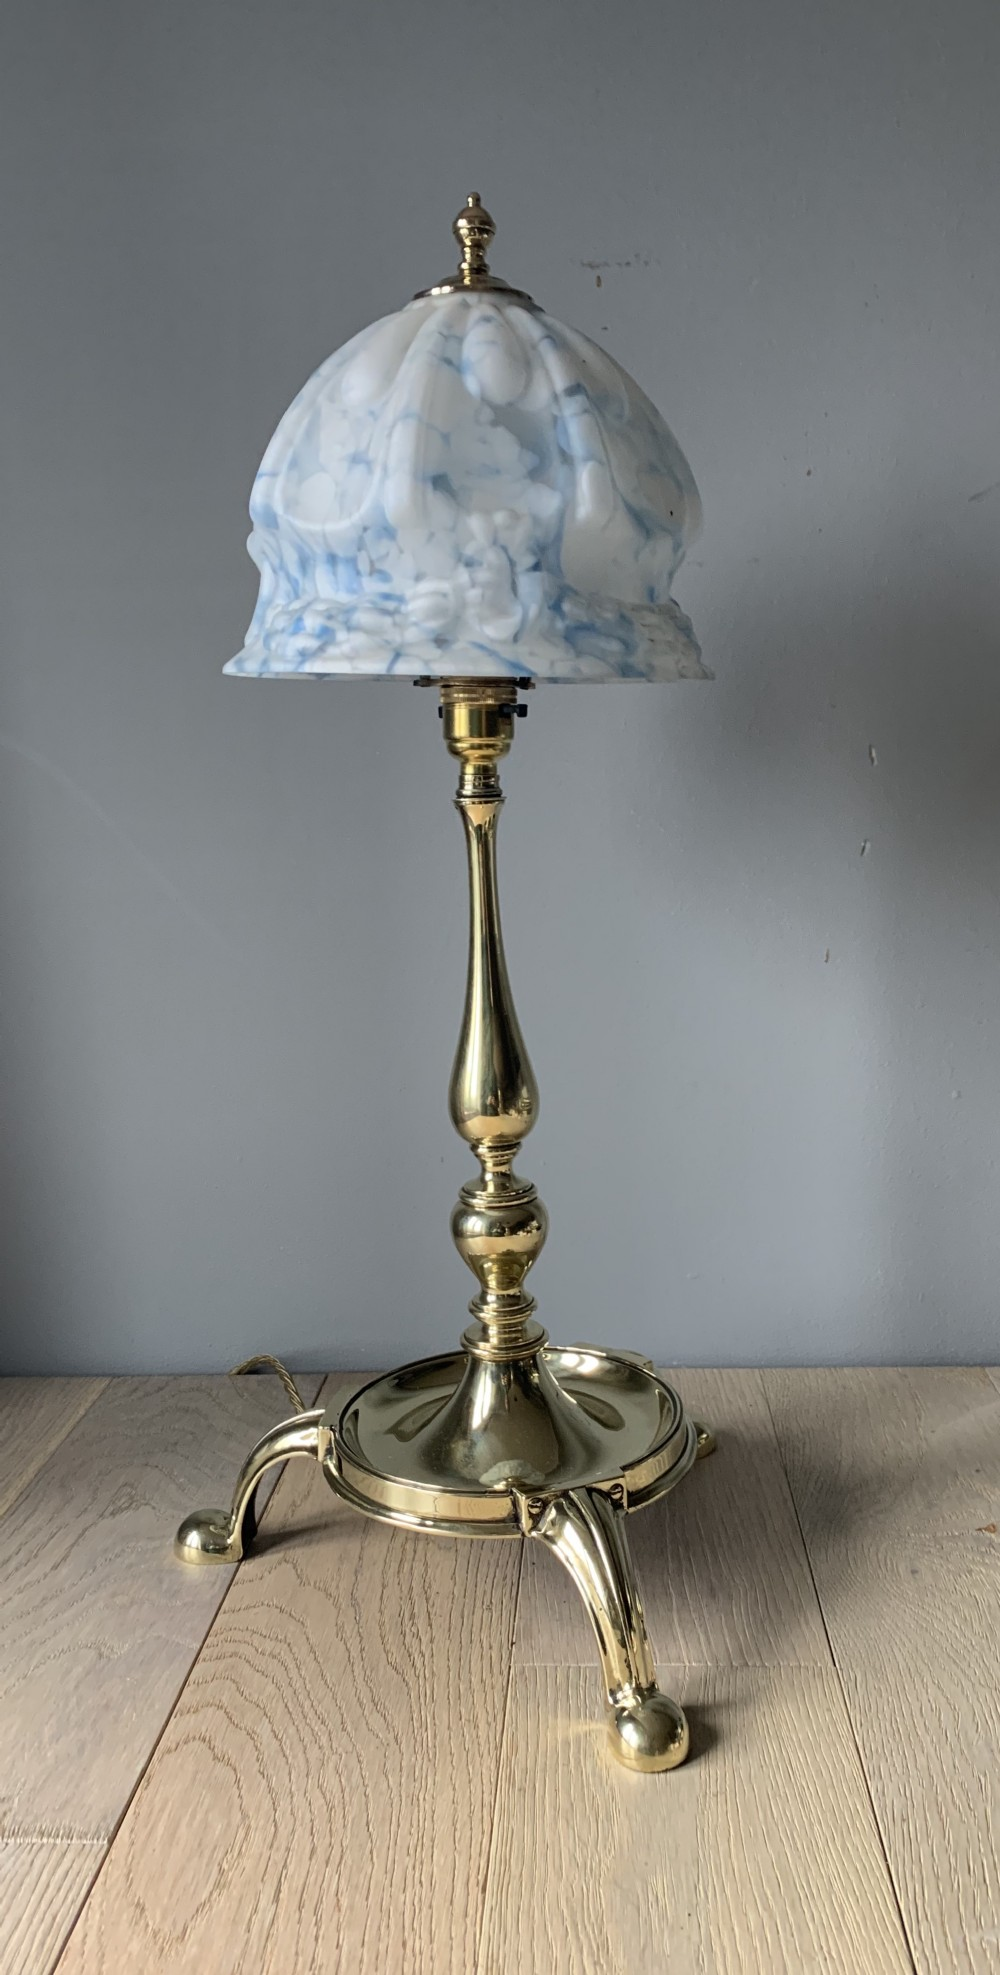 large edwardian brass table lamp with ceramic shade rewired and pat tested